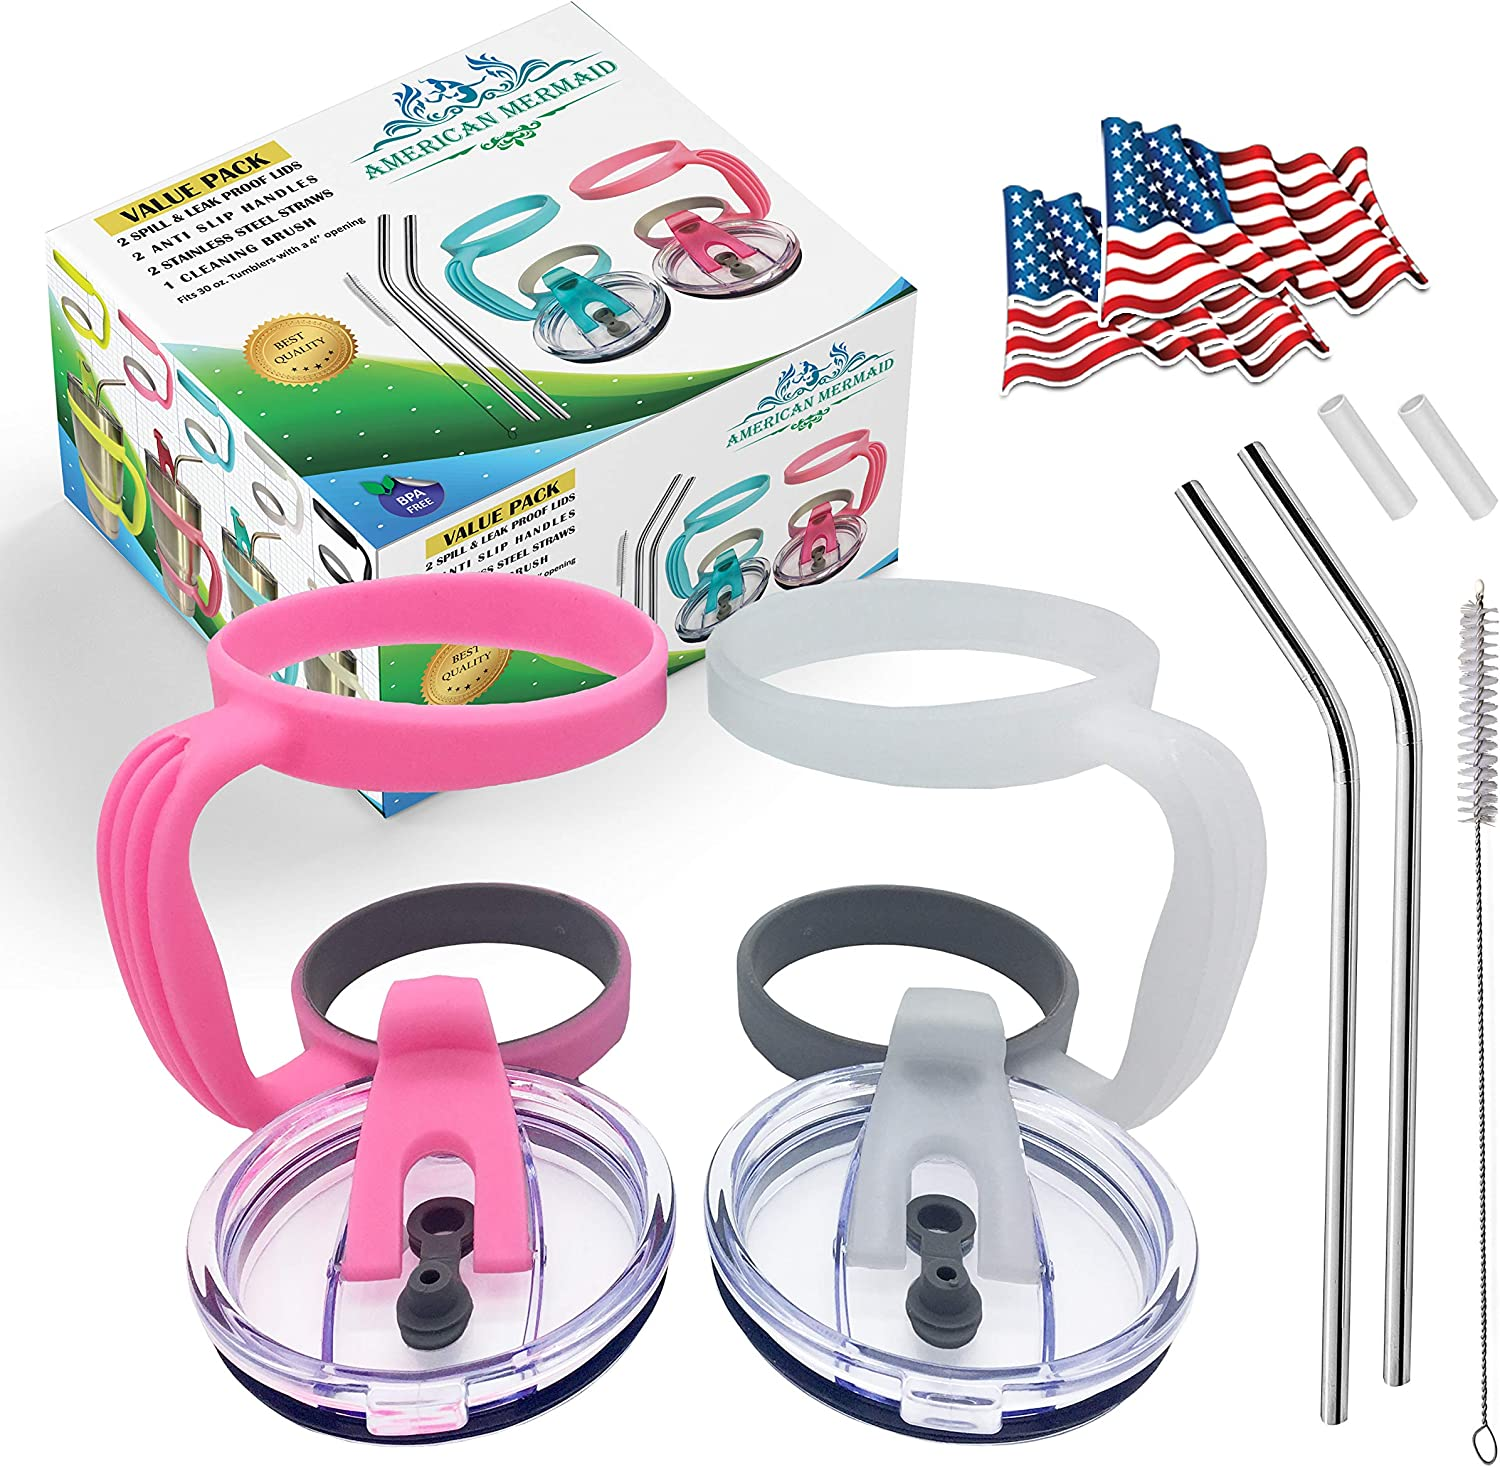 11 PCS, 2 Yeti Lids 30 oz Spill Proof +2 Handles+2 Stainless Steel Straws+2 Silicone Tips+1 Cleaning Brush+2 Flag stickers, Fits Yeti Ramblers and other 30 oz Tumblers same as yeti (Clear-CandyPink)